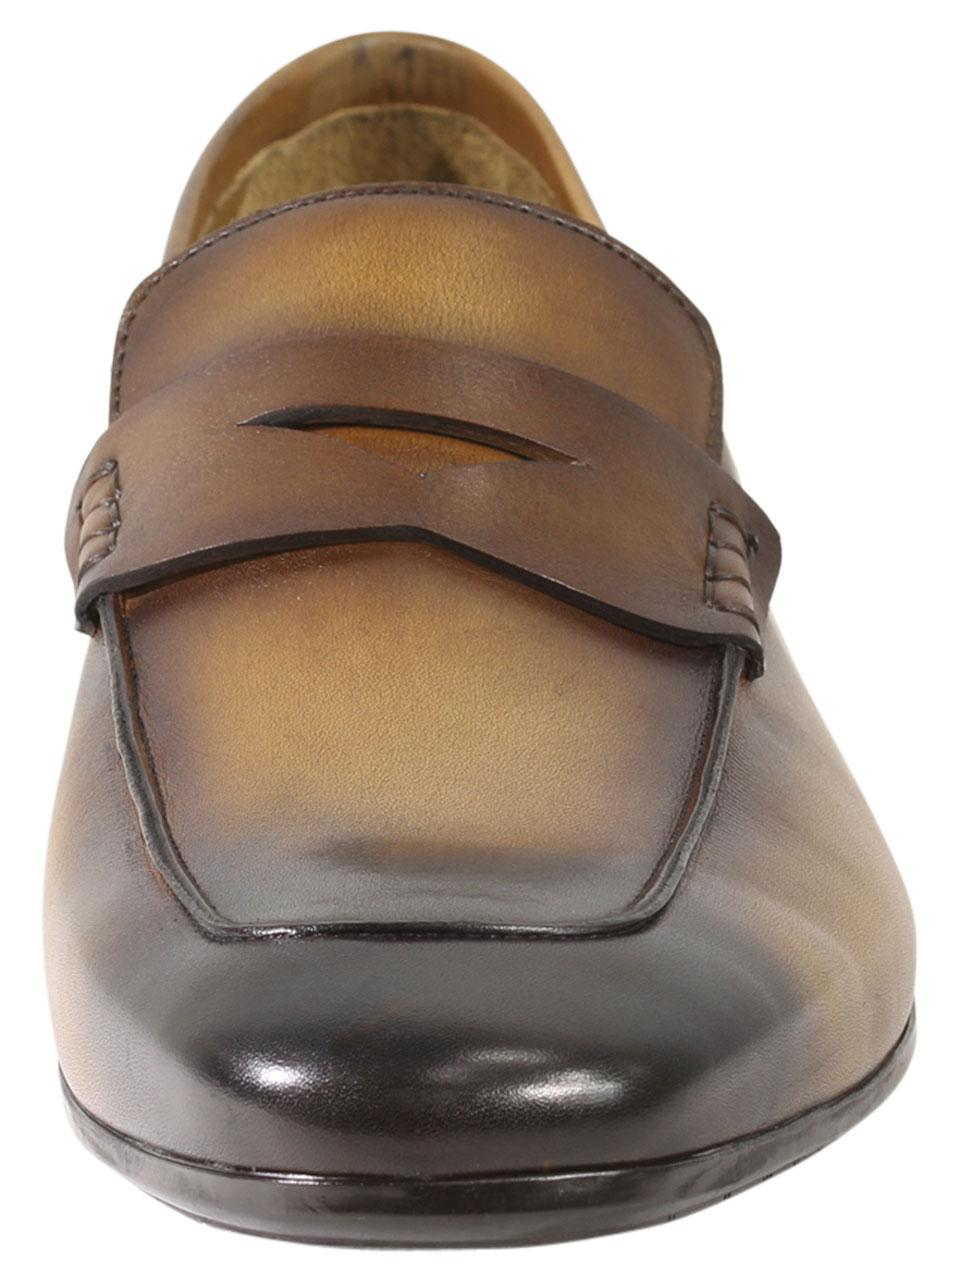 f78b4a51a5e ... Penny Loafers Shoes by Bruno Magli. 1234567